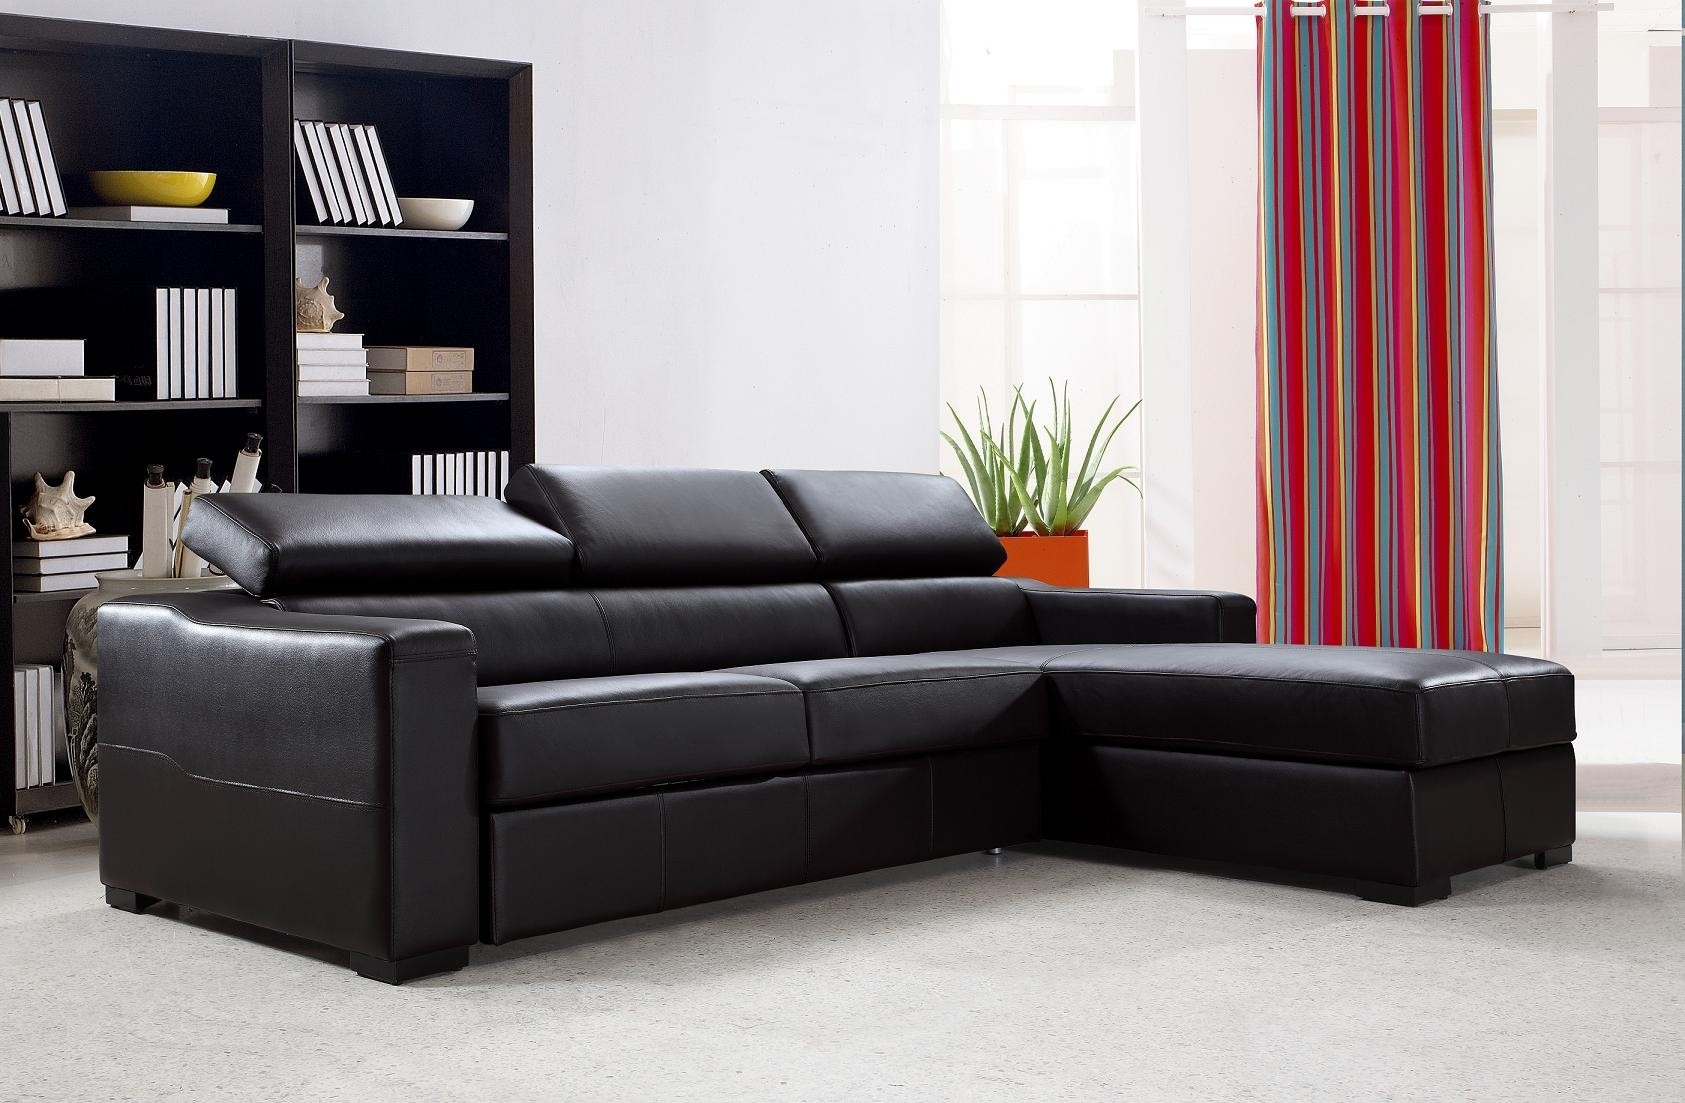 Sofa : Lovely Leather Sofa Bed Sectional Reversible Set With Storage Inside Leather Sofas With Storage (Image 9 of 10)